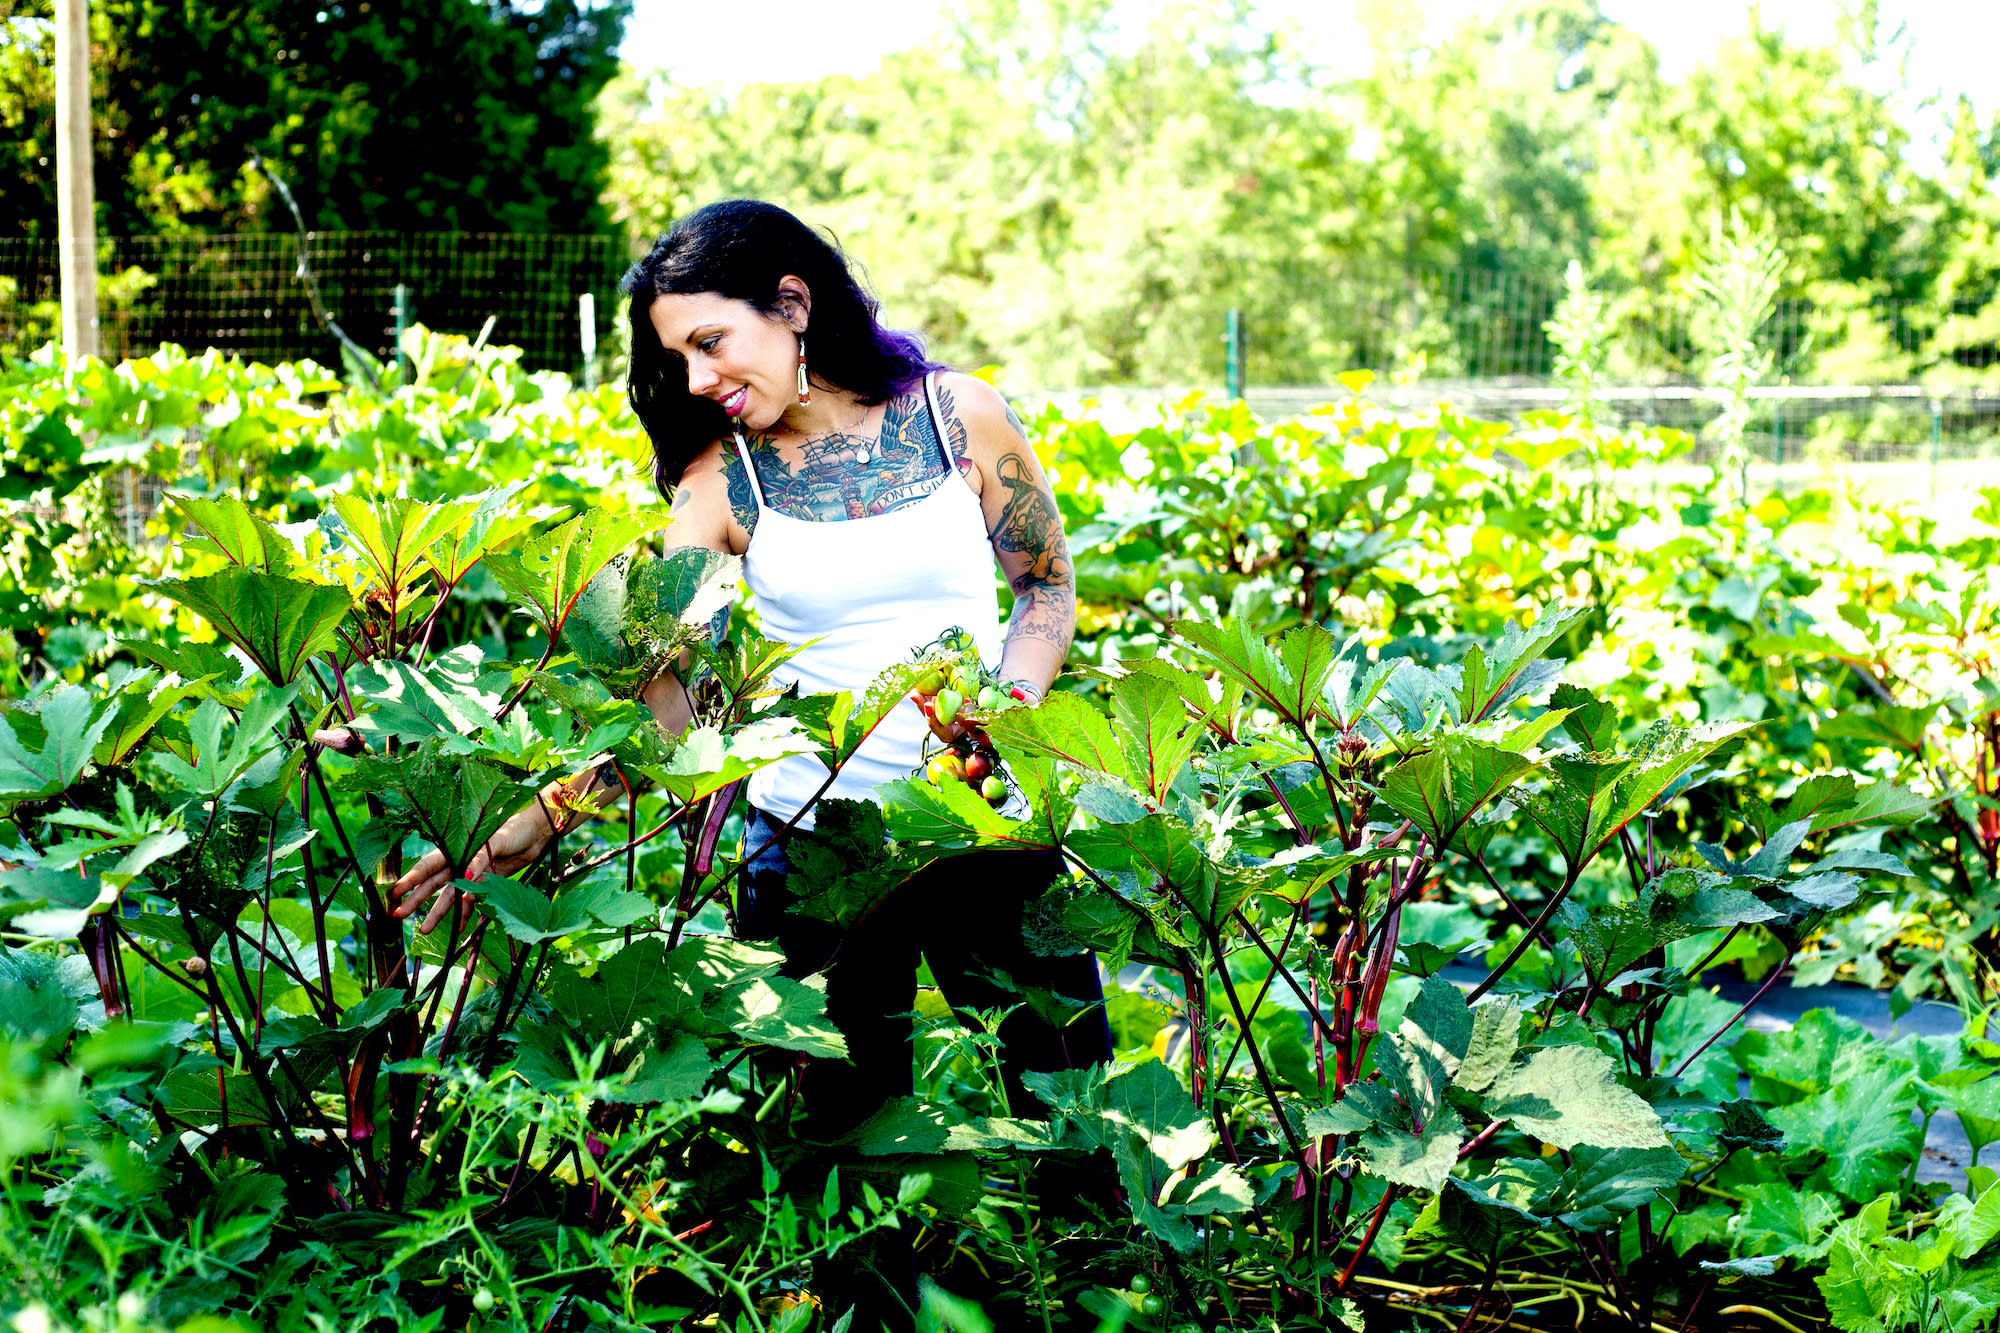 Founder of Virginia Free Farm, Amyrose Foll, stands in a garden thick with tall plants that have large green leaves.